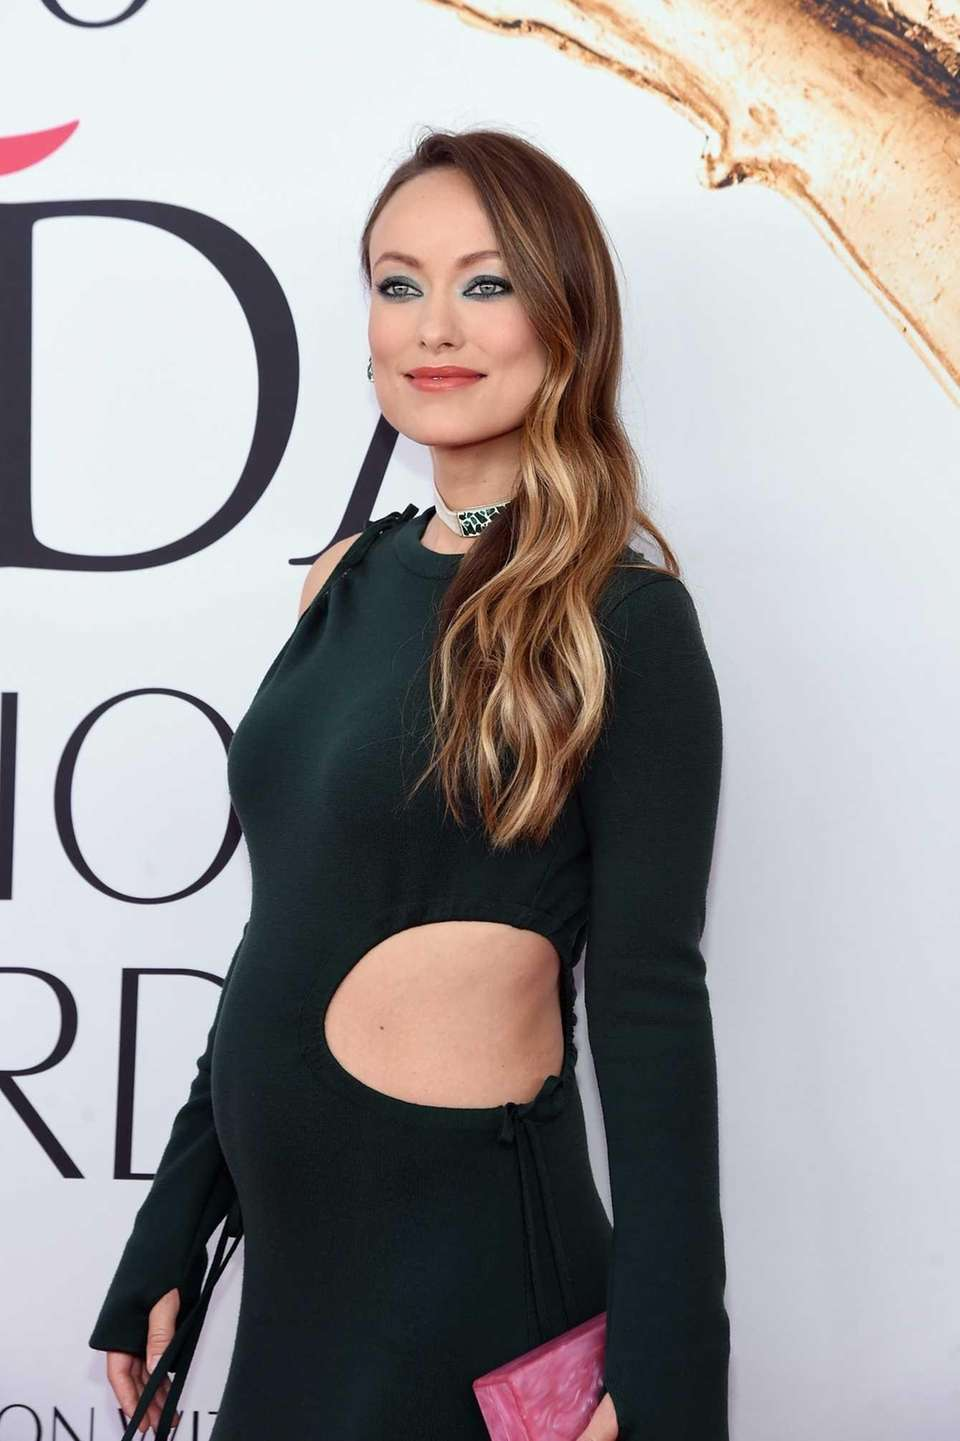 Actress Olivia Wilde expressed her support for Hillary